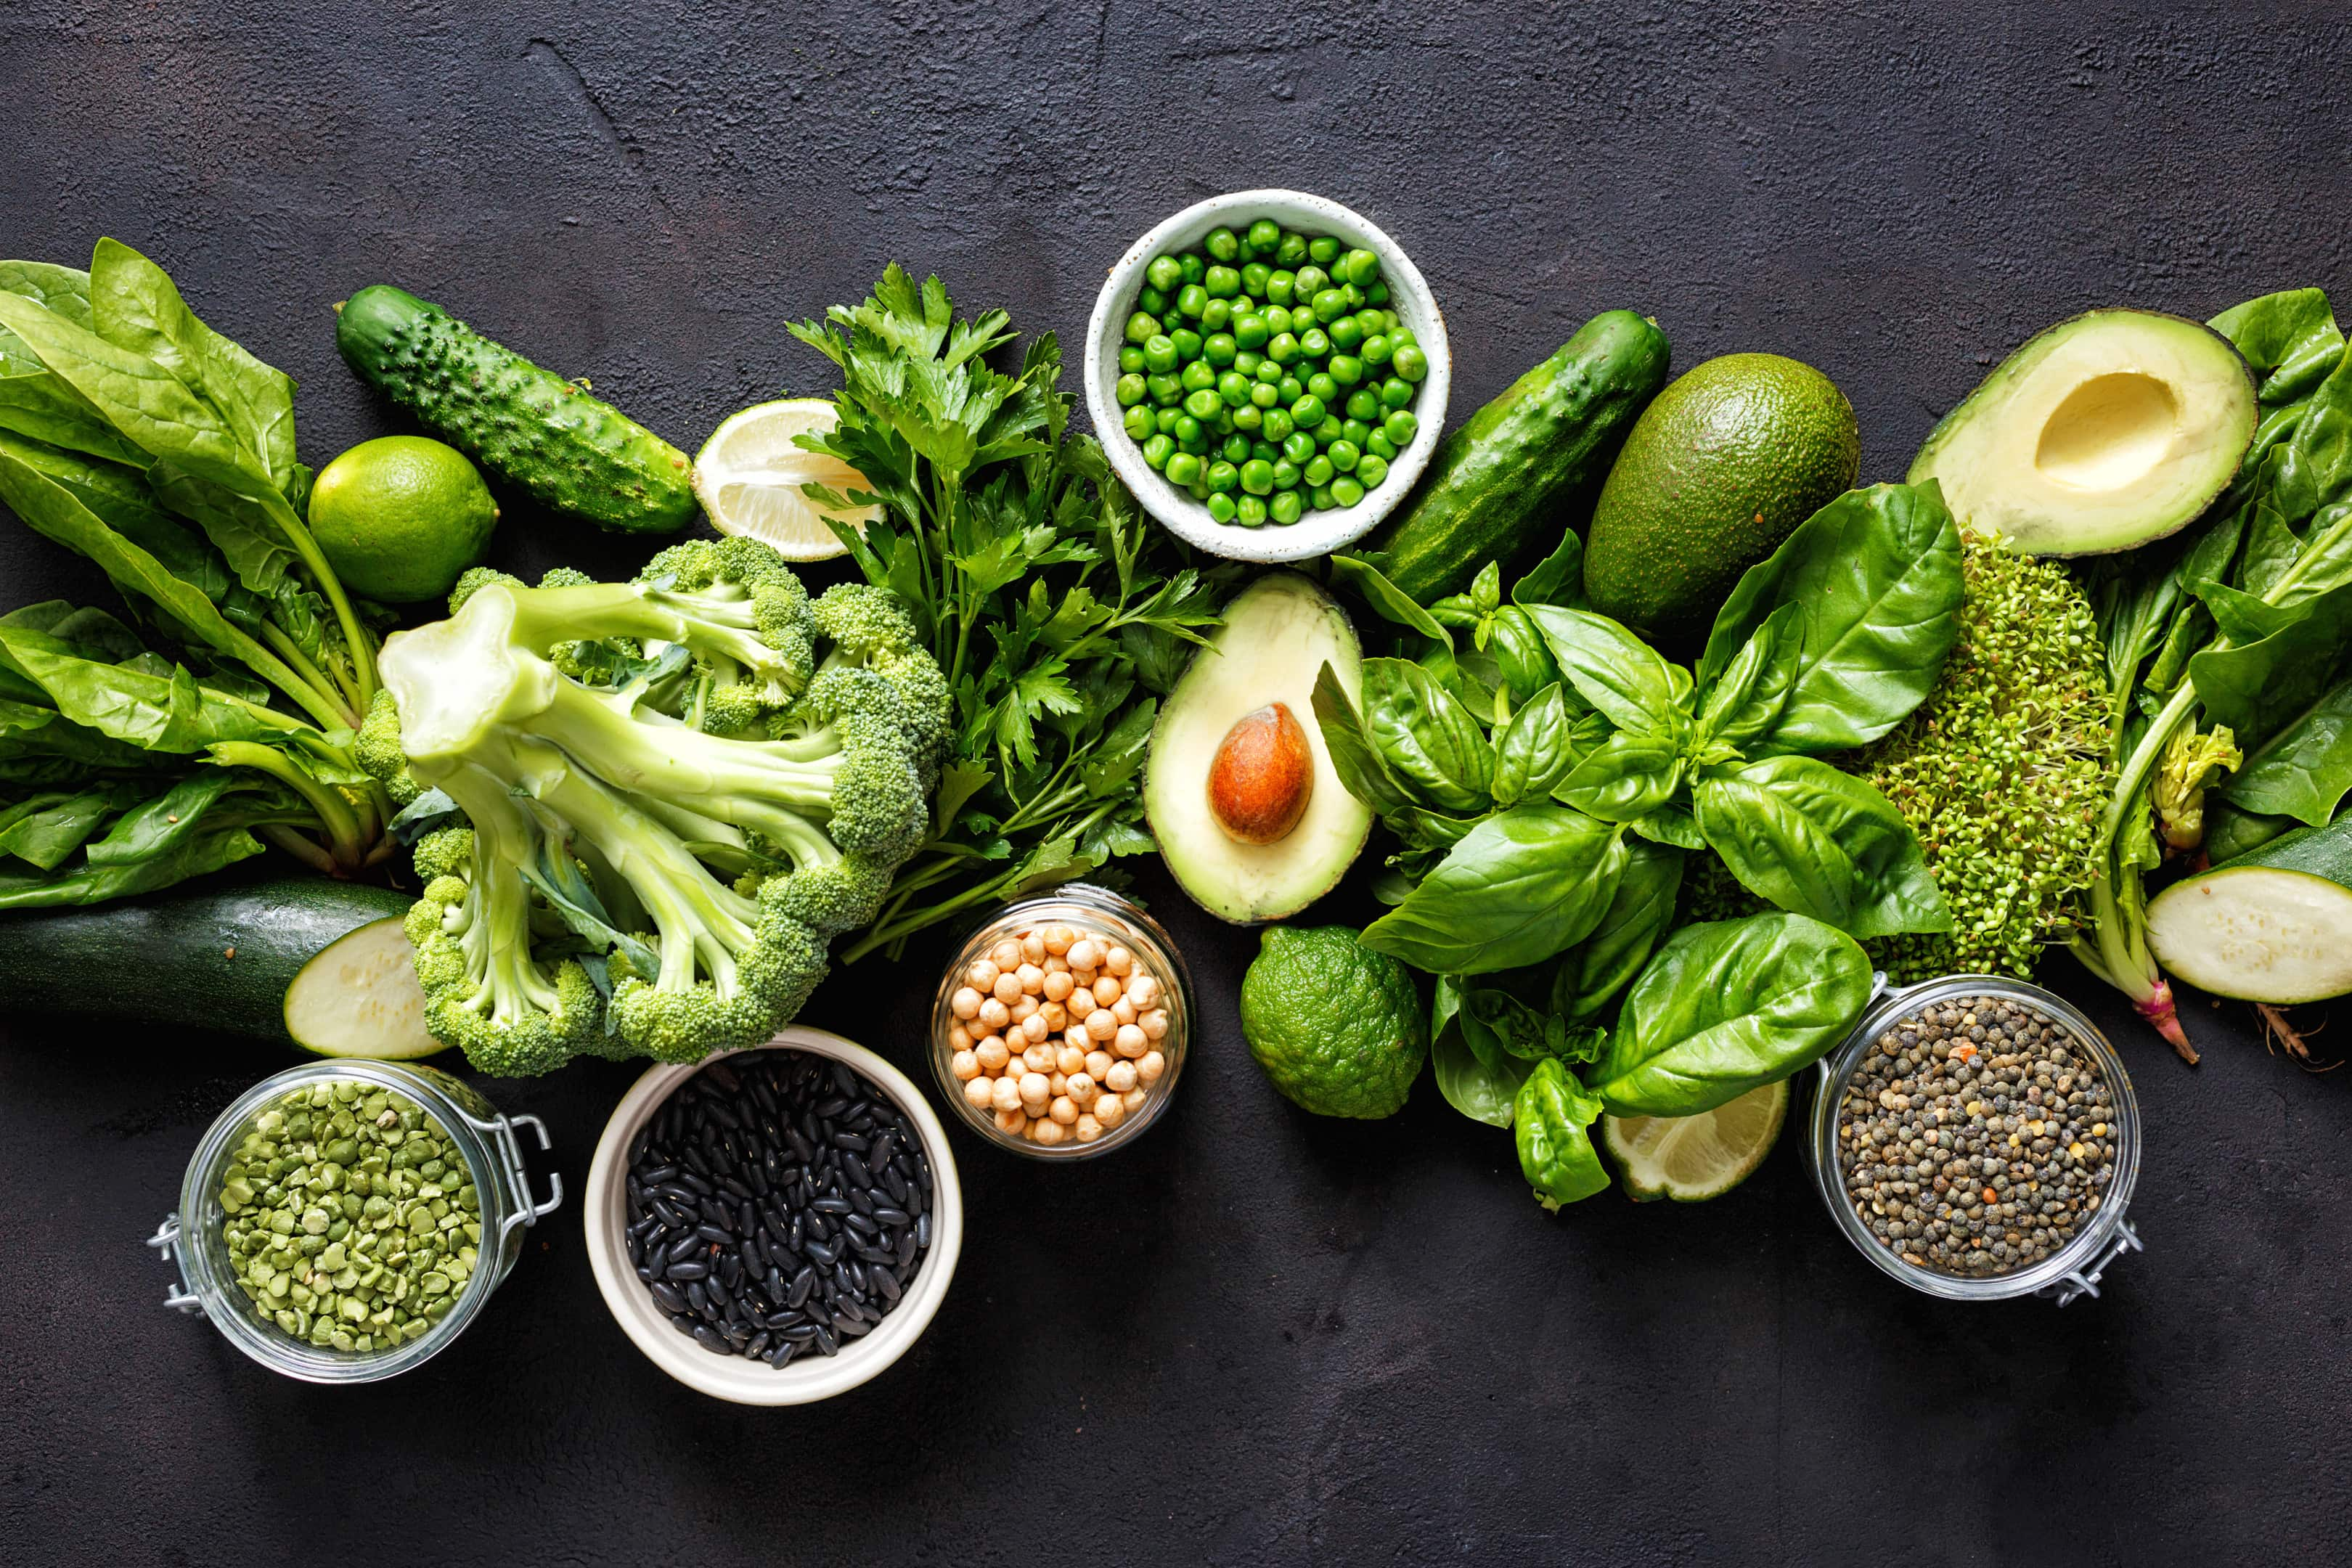 Various leafy green vegetables on dark background